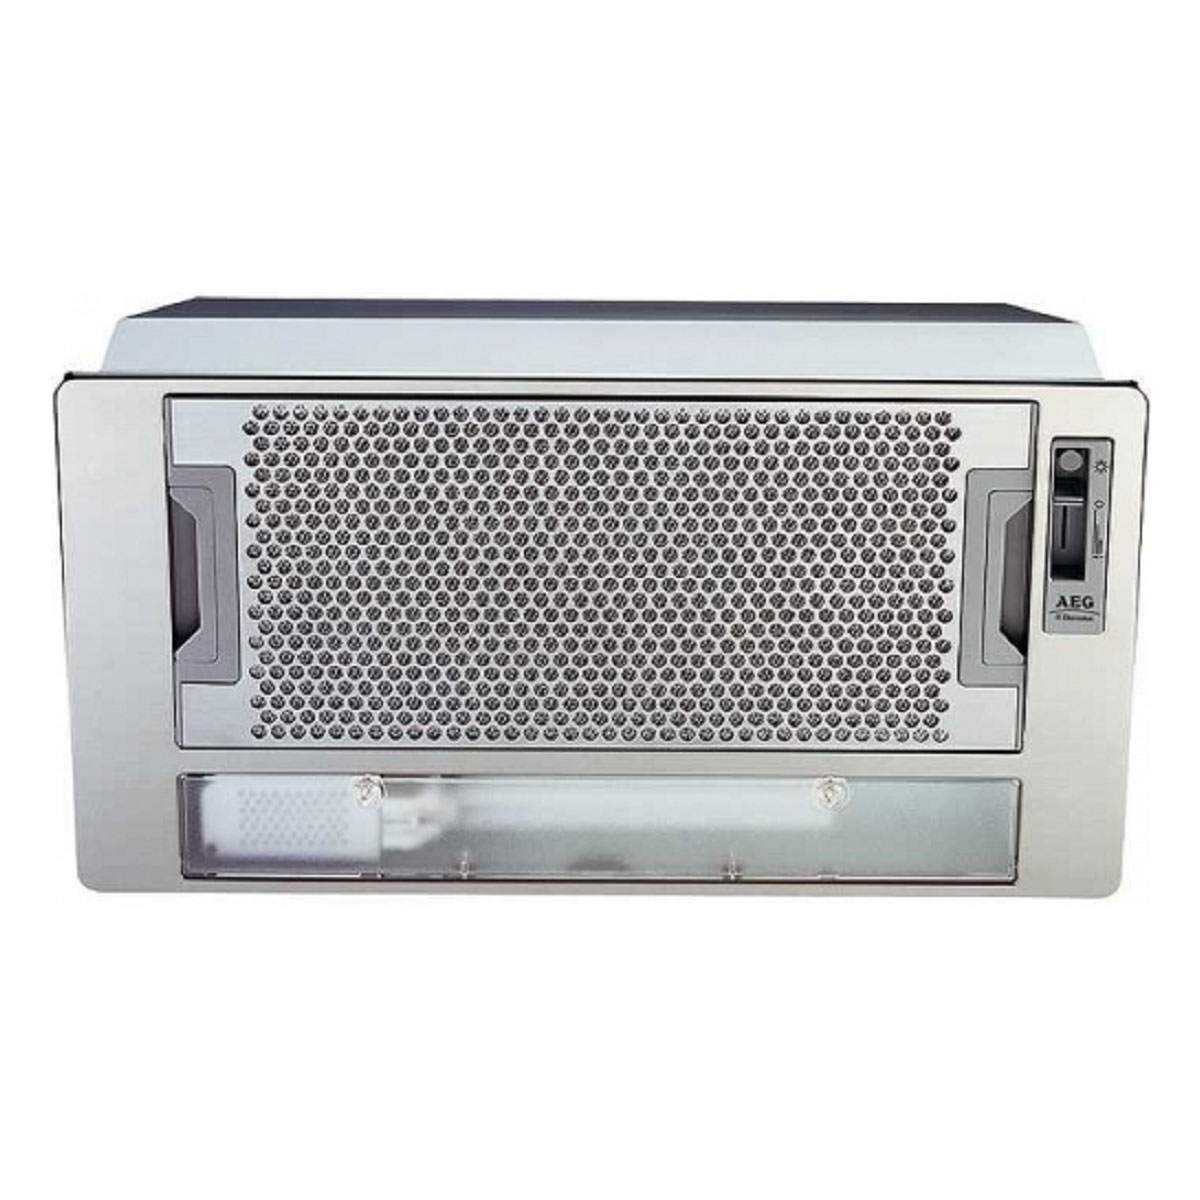 AEG 570DM 55cm Intergrated Rangehood 37310